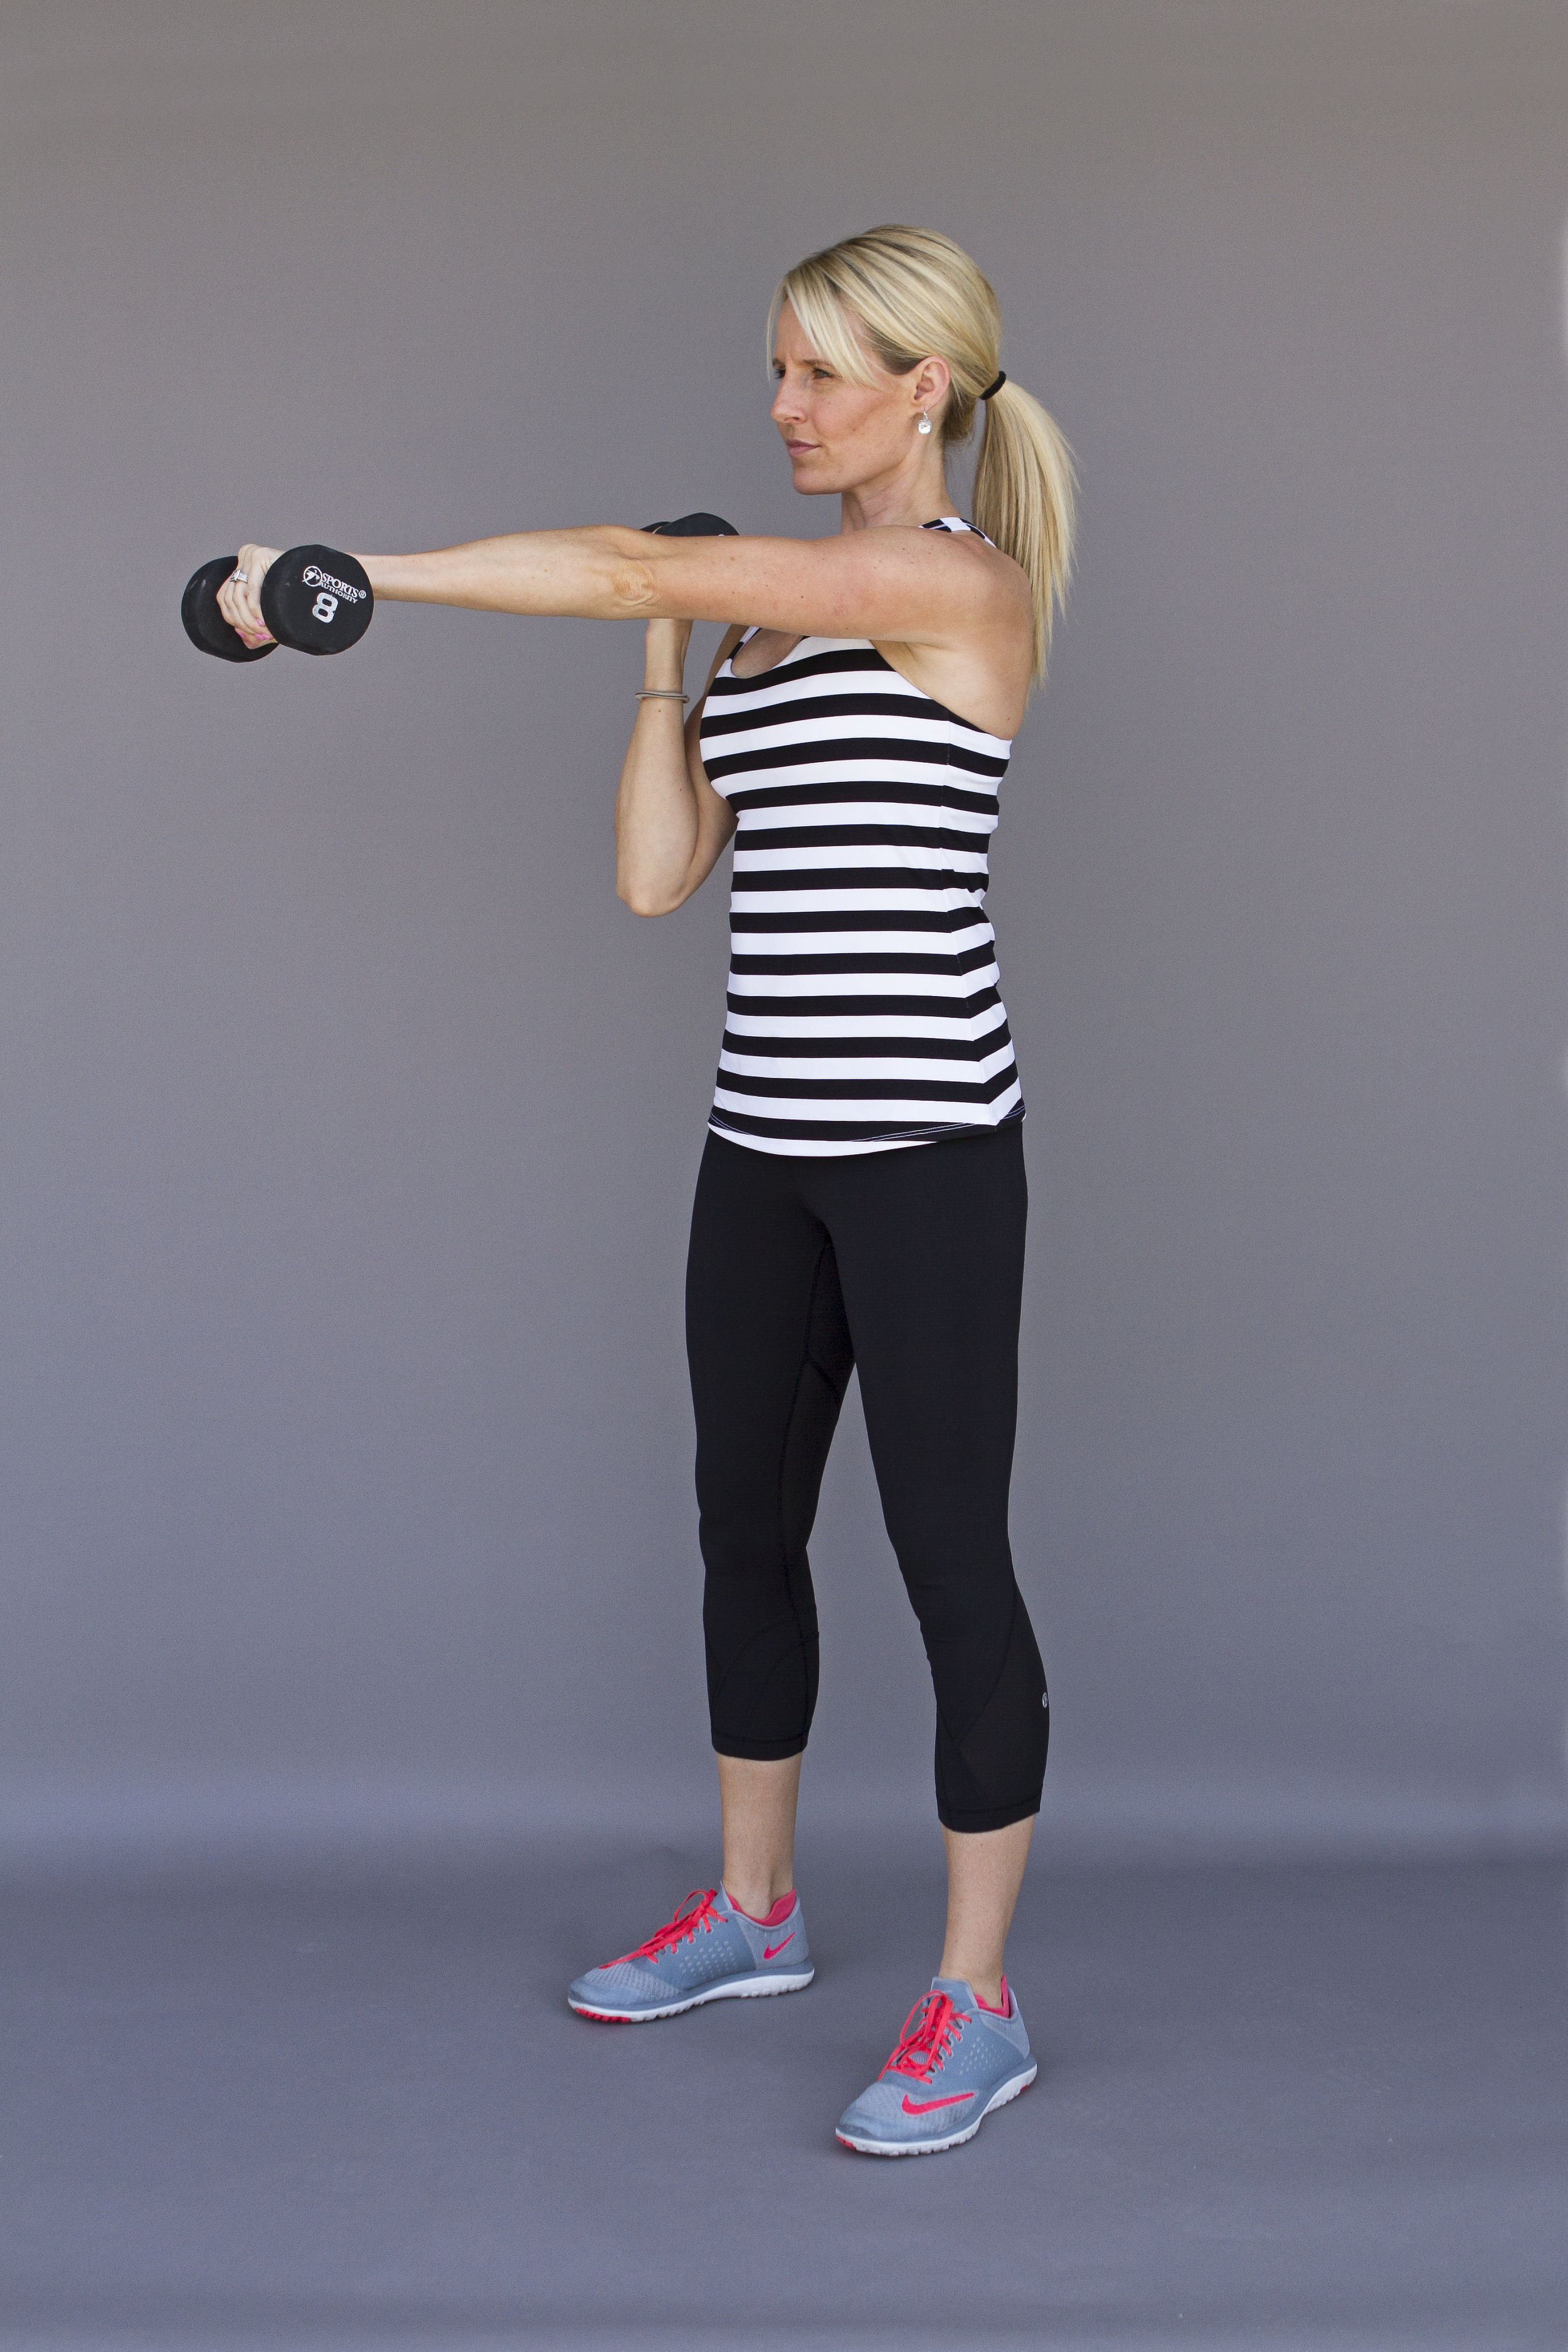 arm workout with dumbbells